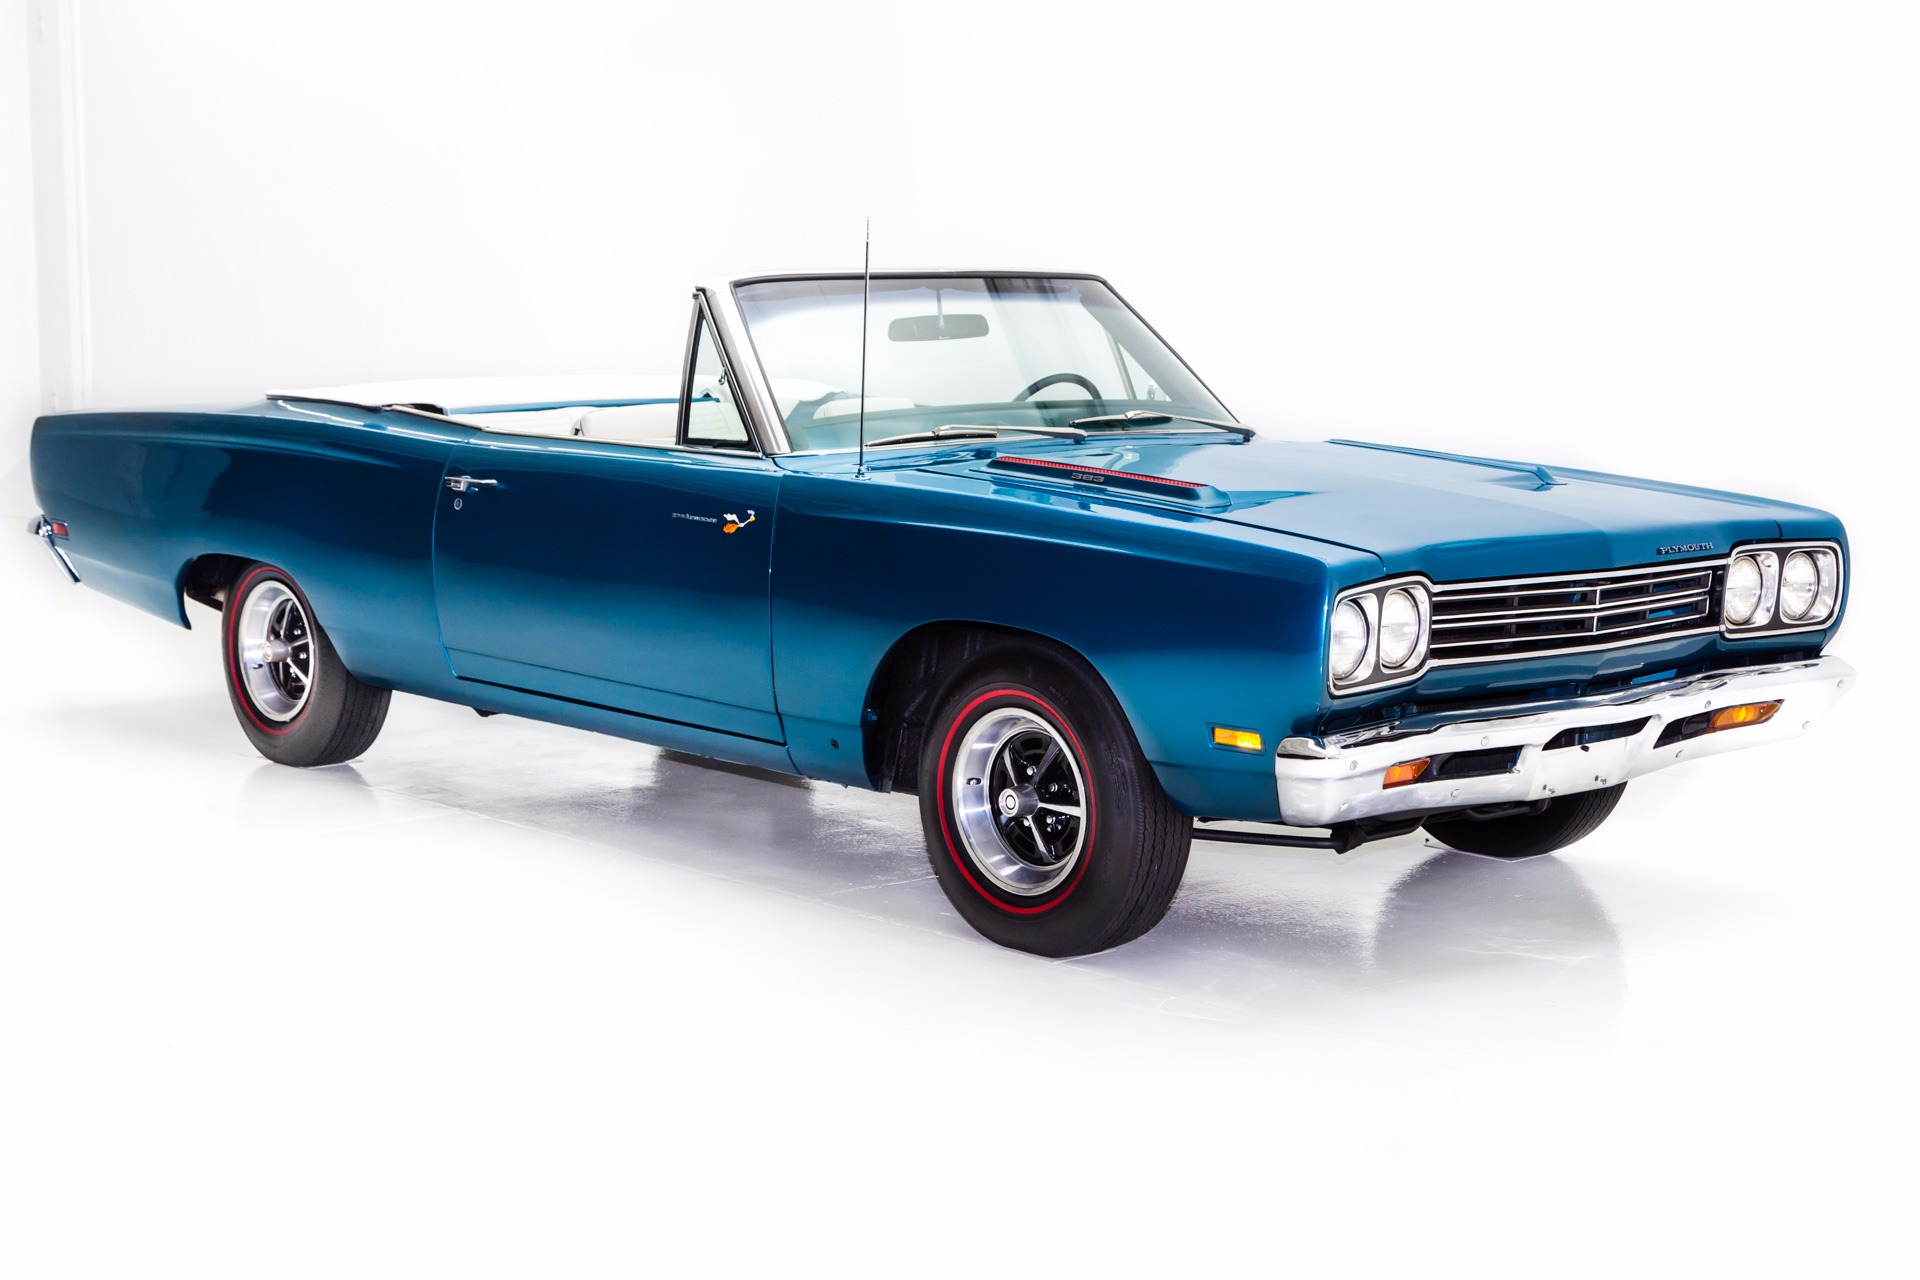 1969 Plymouth Roadrunner Convertible 383 American Dream Machines Classic Cars Muscle Cars